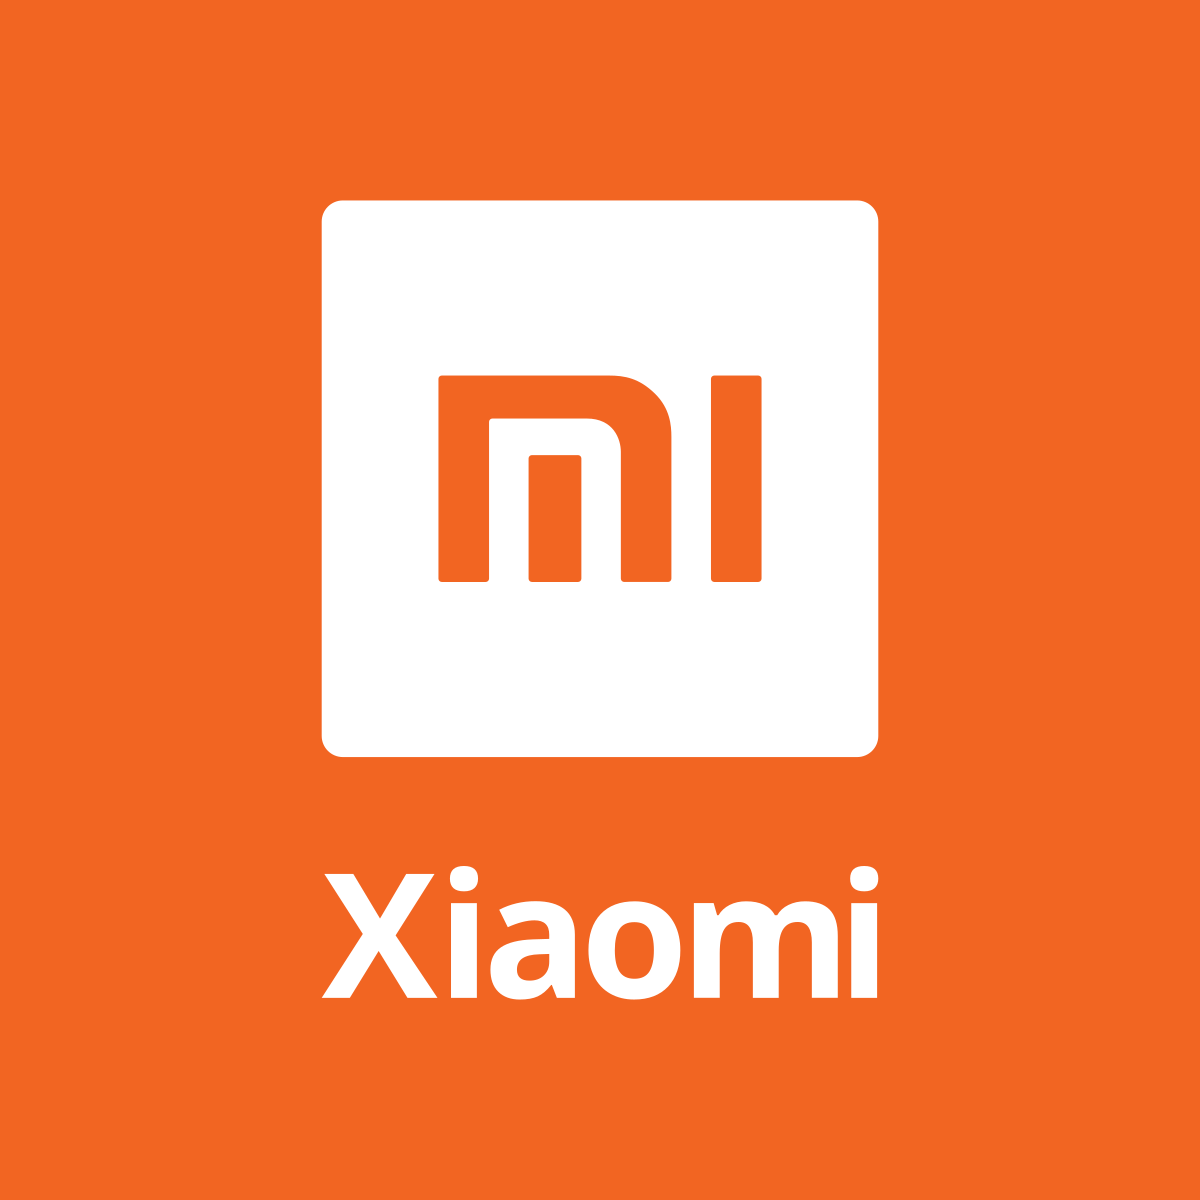 Xiaomi Coupon Code 50% OFF